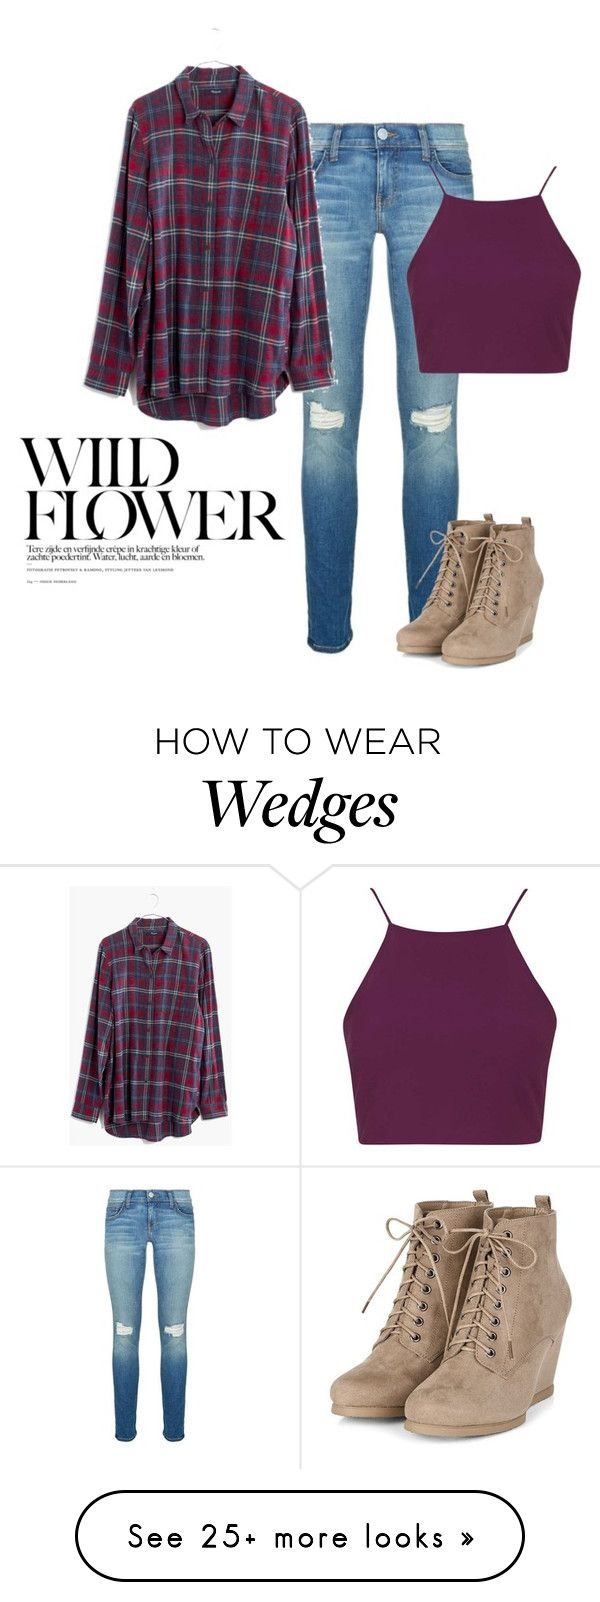 """""""Wild Flower <3"""" by kragrg on Polyvore featuring Rebecca Minkoff, Madewell and Topshop"""